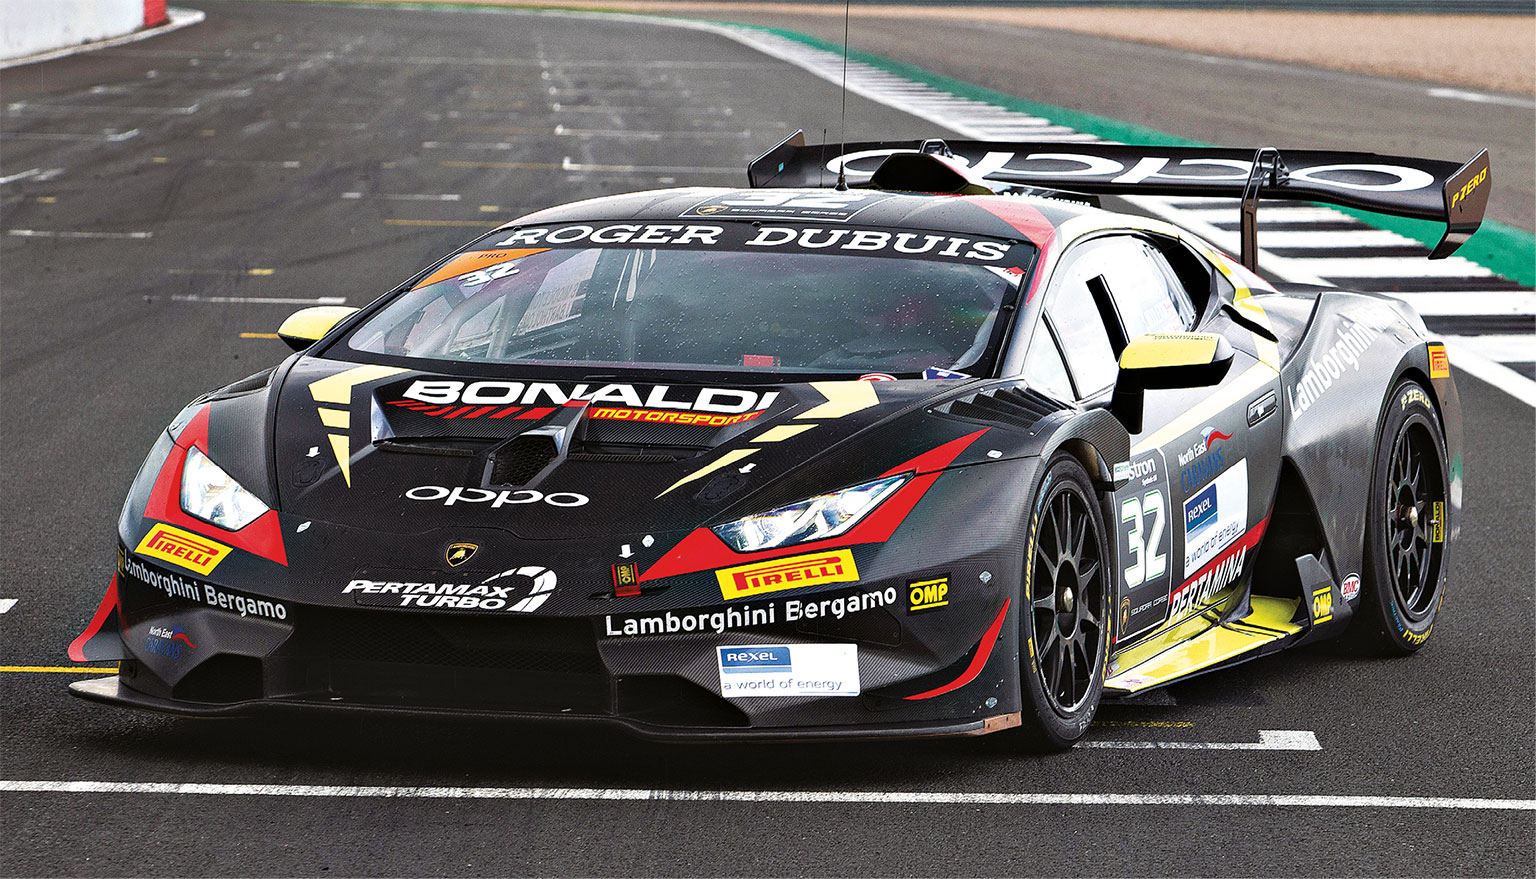 New Super Trofeo features heavy aero changes, especially around the engine cover.